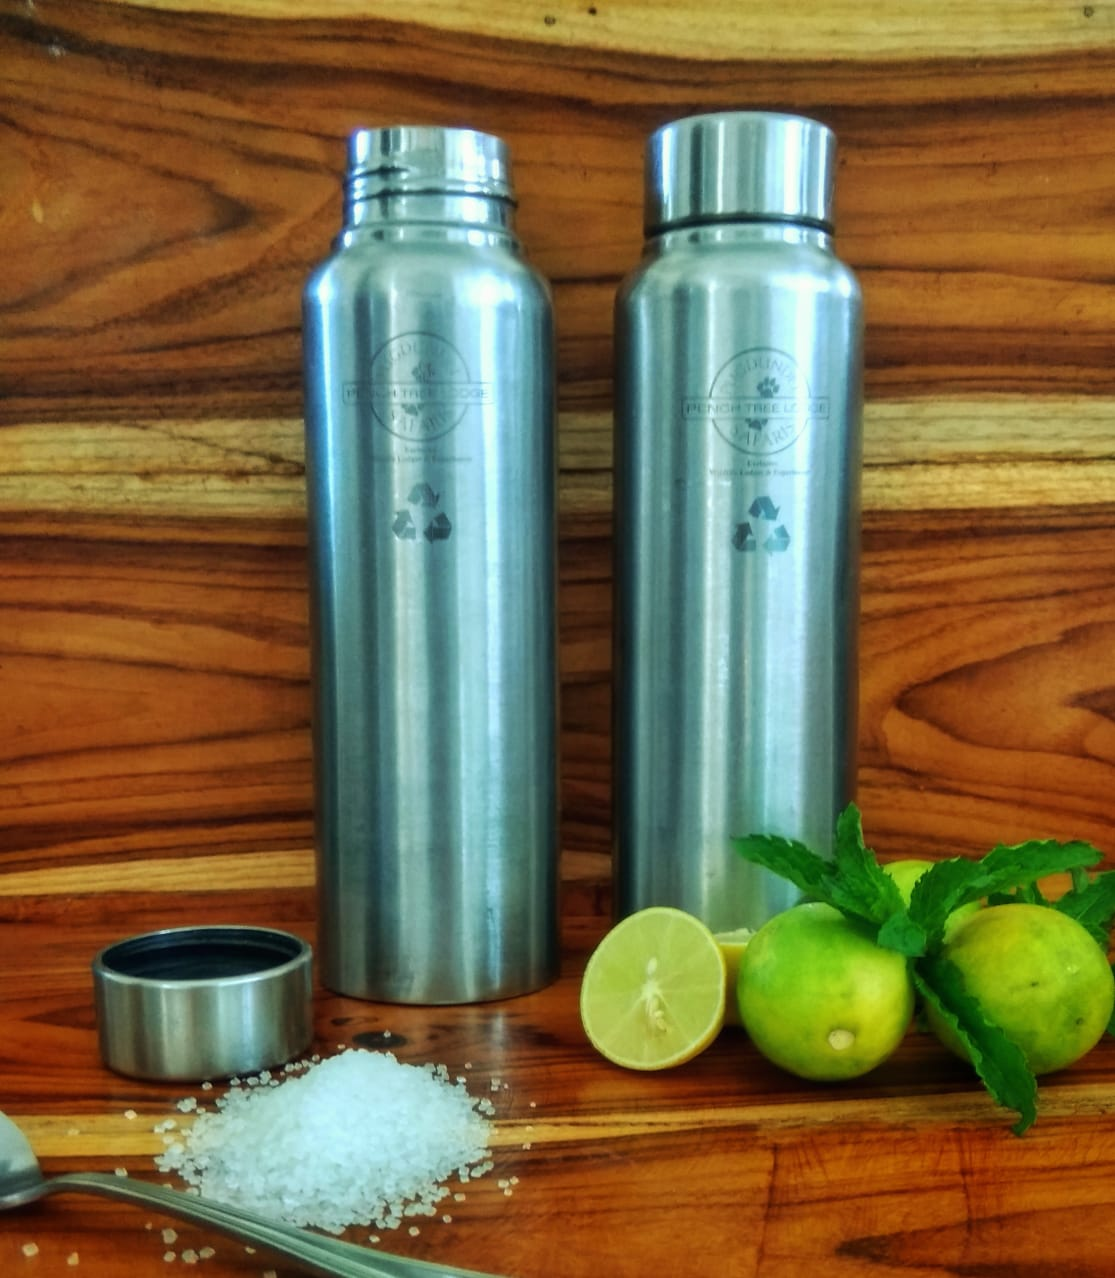 steel sippers for lemonade